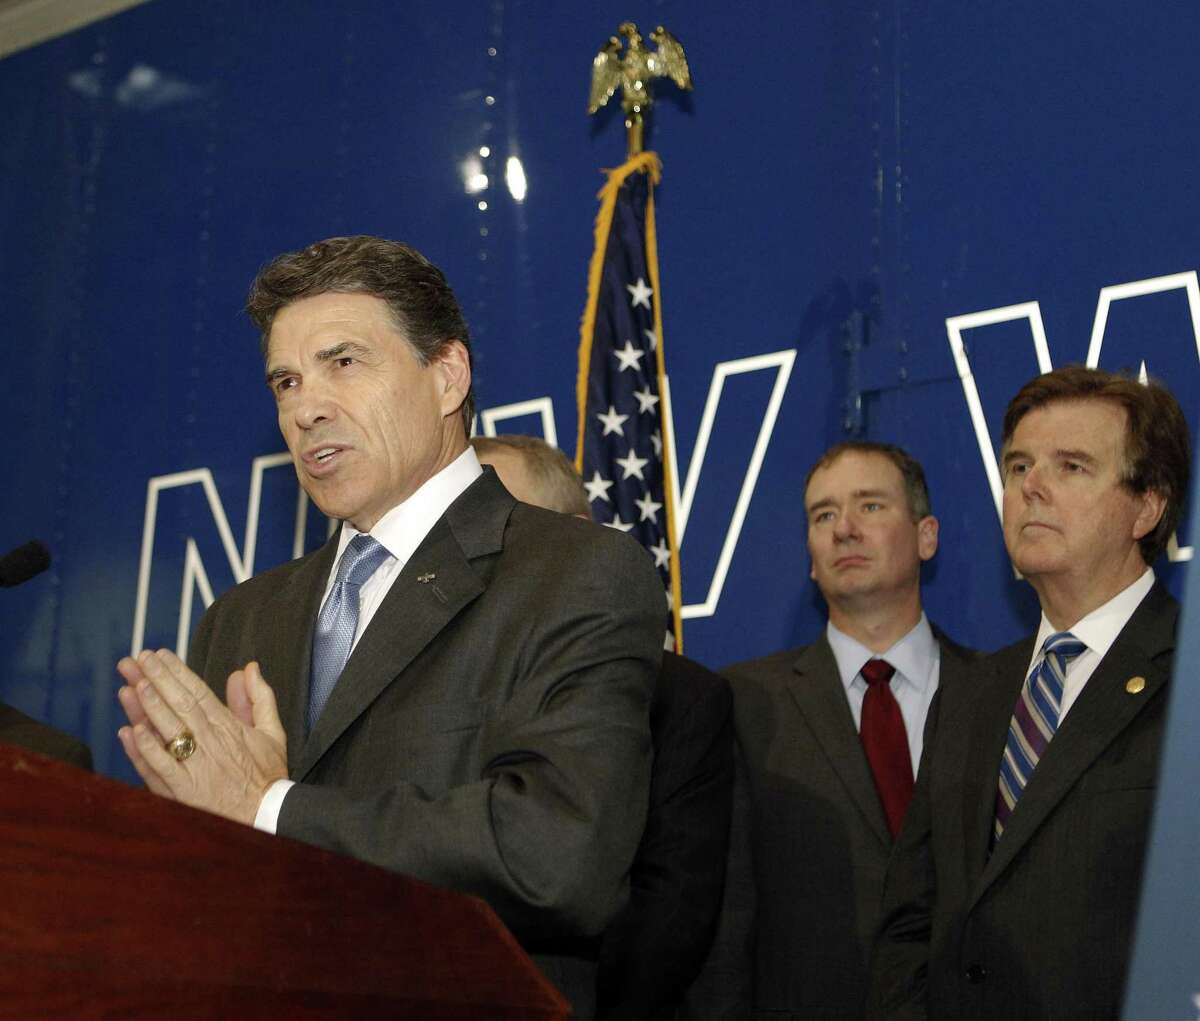 Texas Governor Rick Perry left, as he announces the Texas Budget Compact, composed of five key principles during a press conference as Empower Texans President and CEO Michael Quinn Sullivan center, and Texas State Senator Dan Patrick look on at New World Van Lines Monday, April 16, 2012, in Houston. ( James Nielsen / Chronicle )